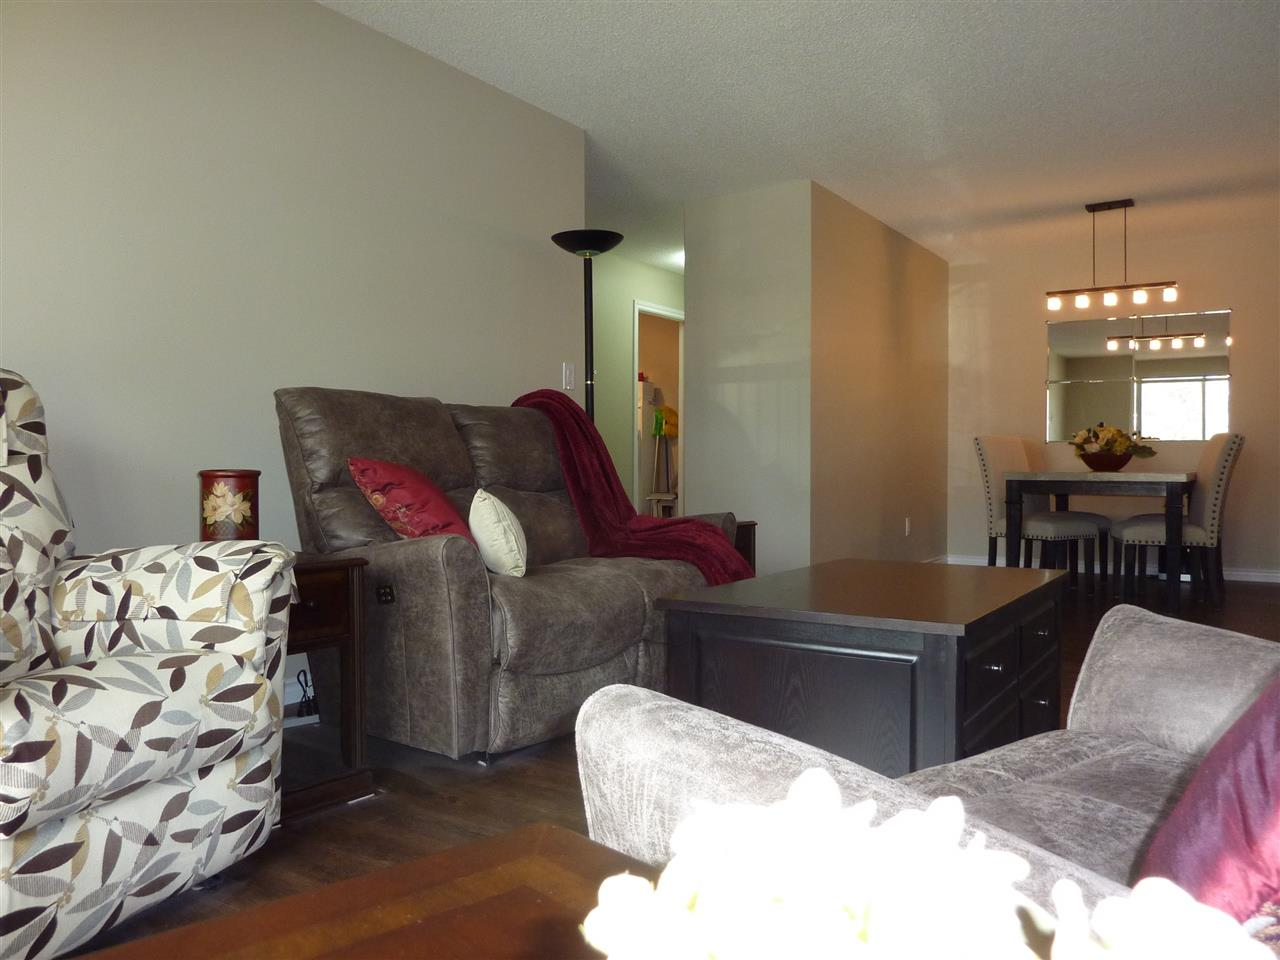 Main Photo: 217 18012 95 Avenue in Edmonton: Zone 20 Condo for sale : MLS® # E4077808